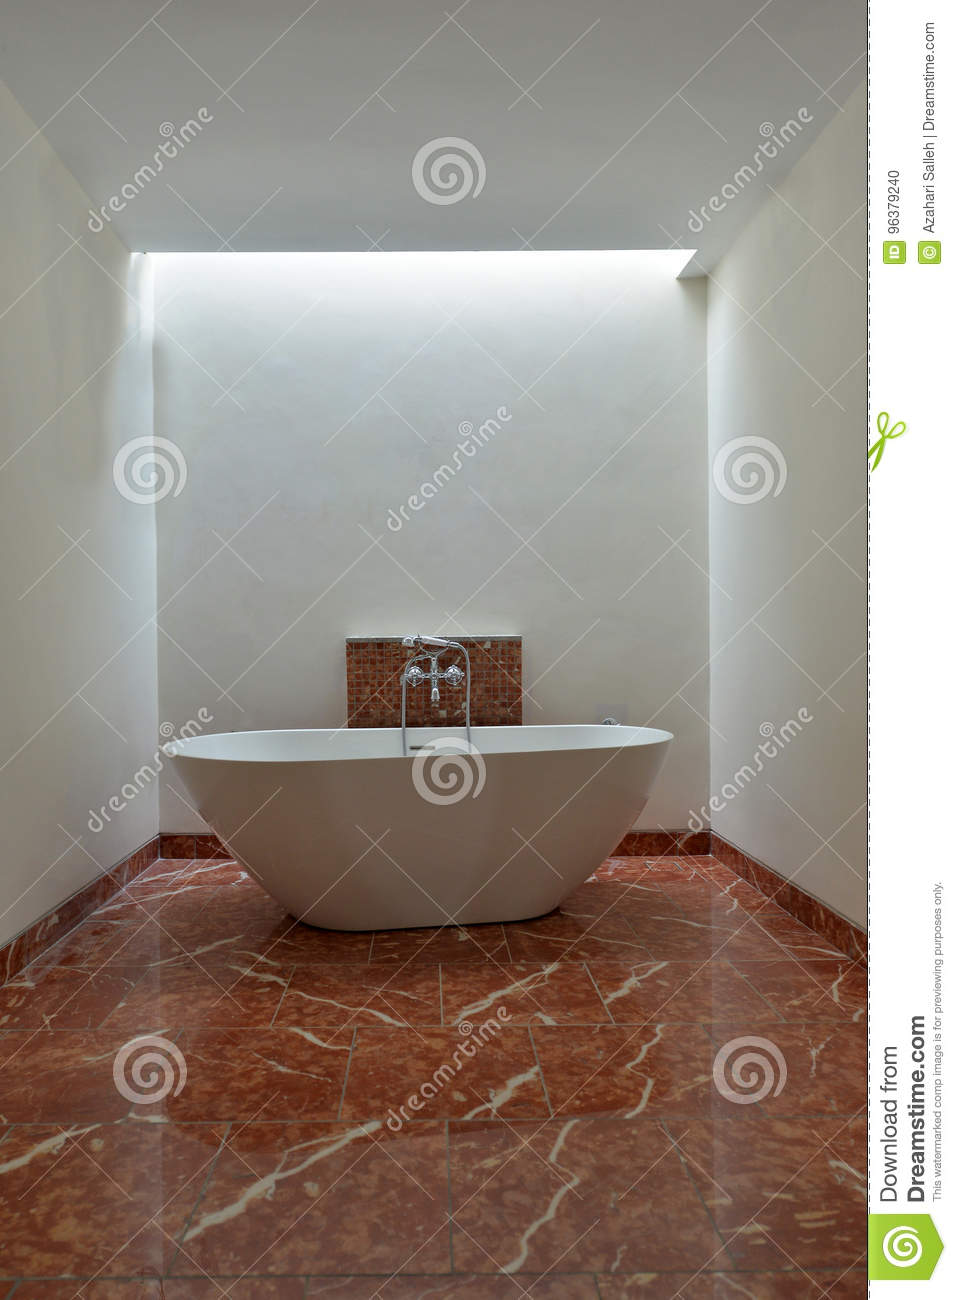 Luxurious Bathtub In Wide Space Bathroom Editorial Image - Image of ...